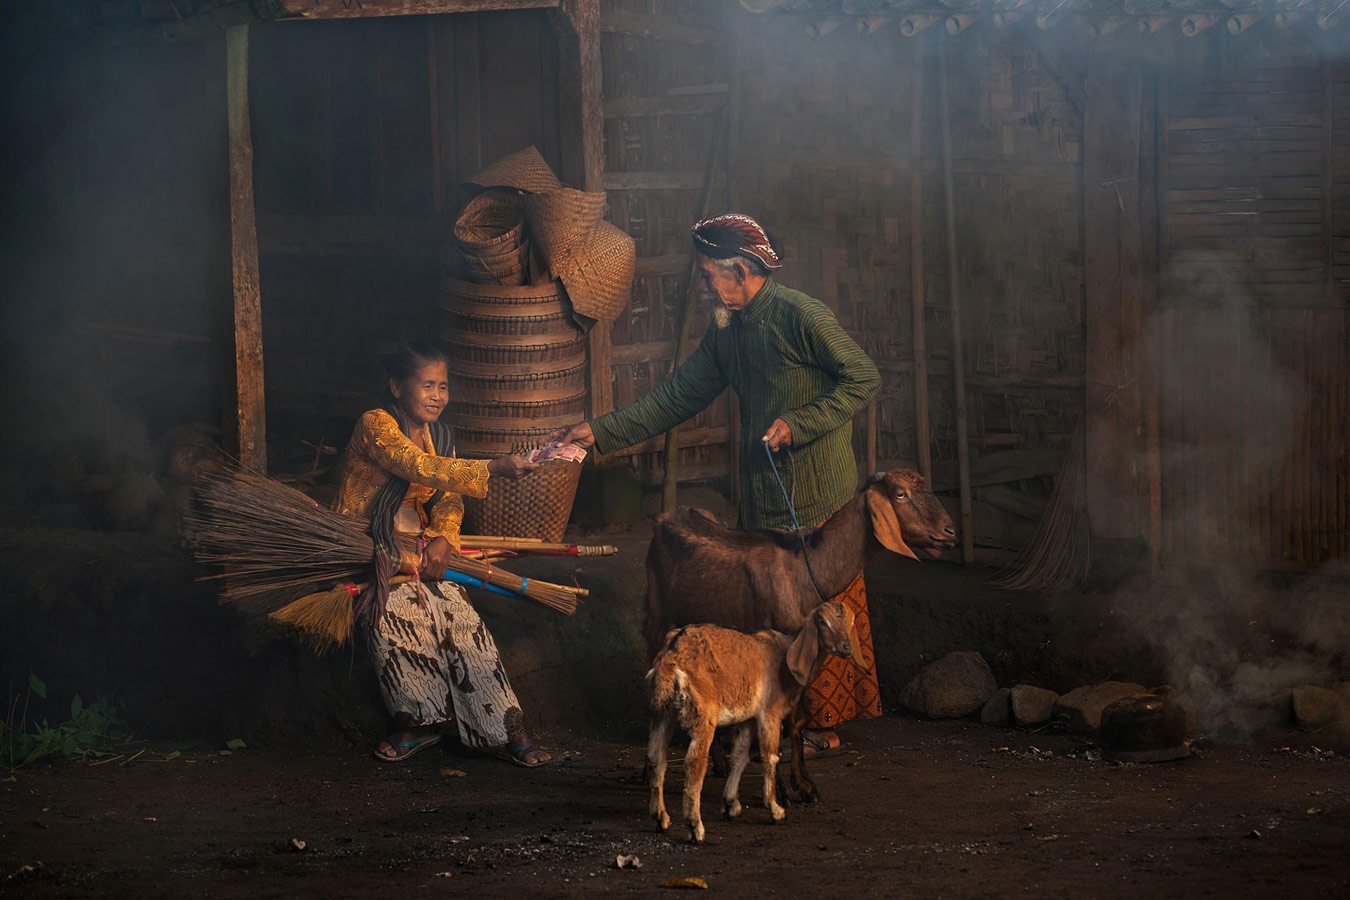 Trading, © Alexandrino Lei Airosa, Indonesia, Regional Winner: East Asia & Pacific, CGAP Photo and Video Contest